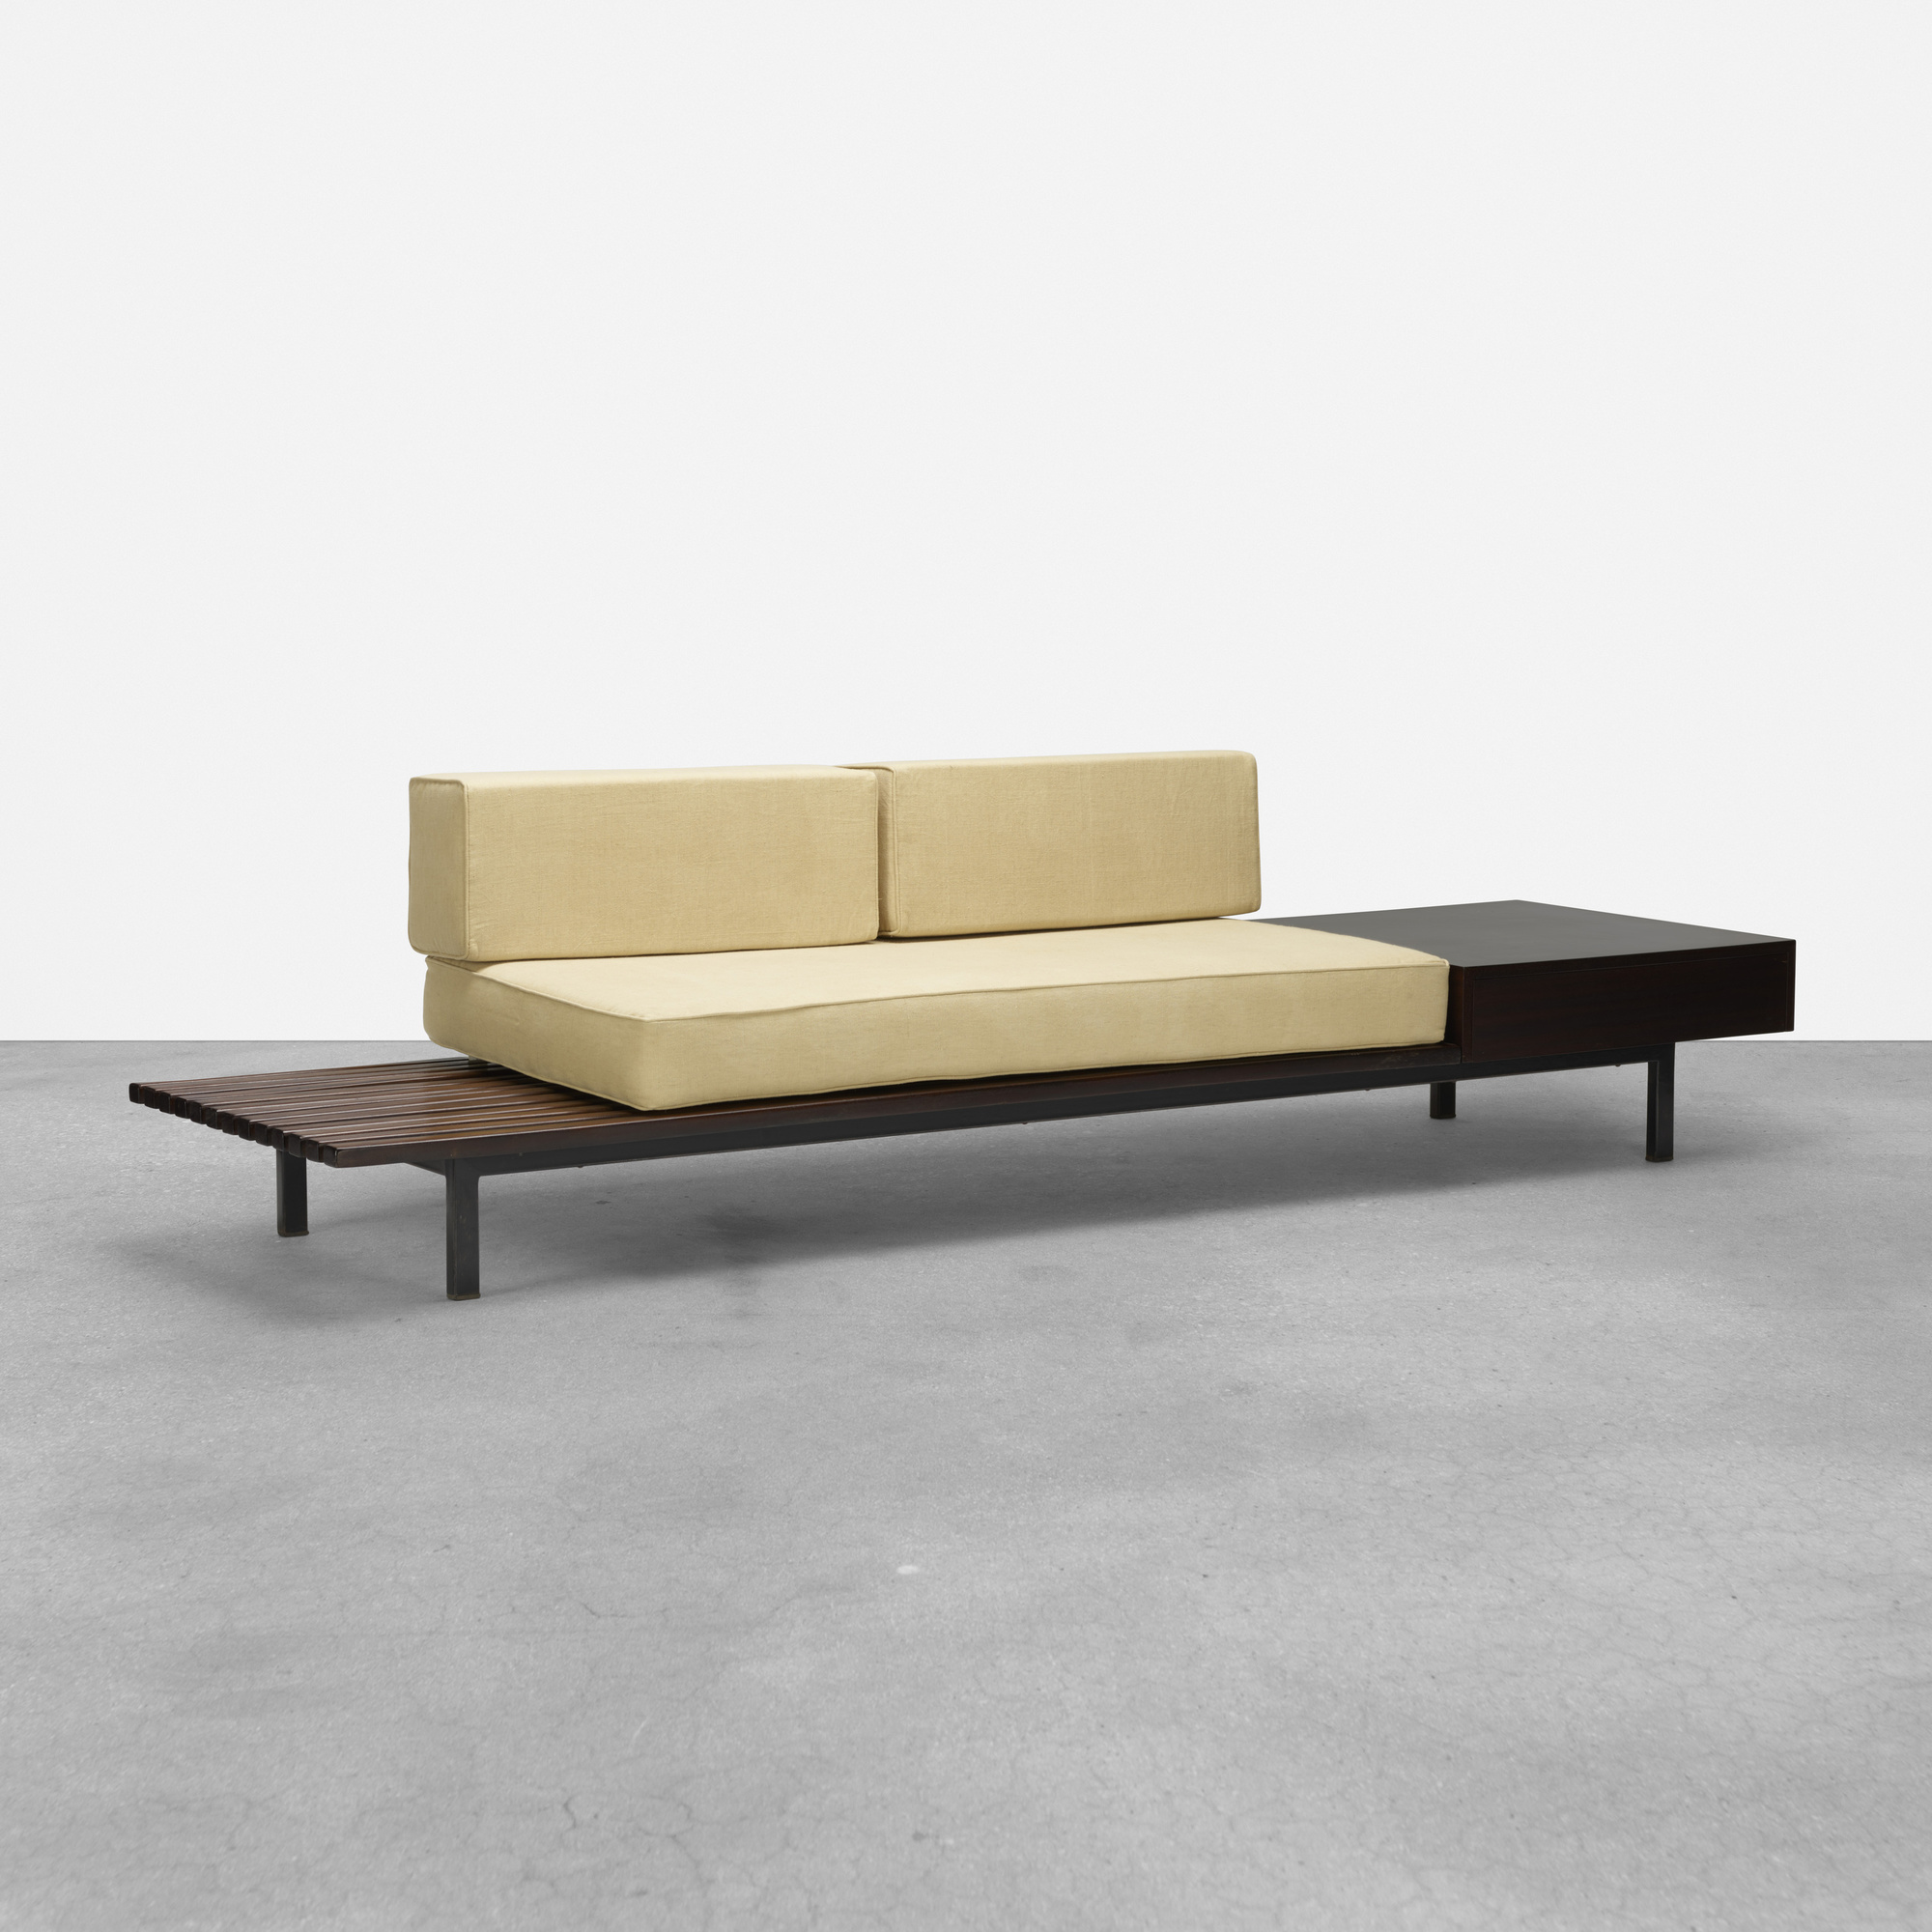 131: Charlotte Perriand / bench from Cité Cansado, Mauritania (1 of 3)